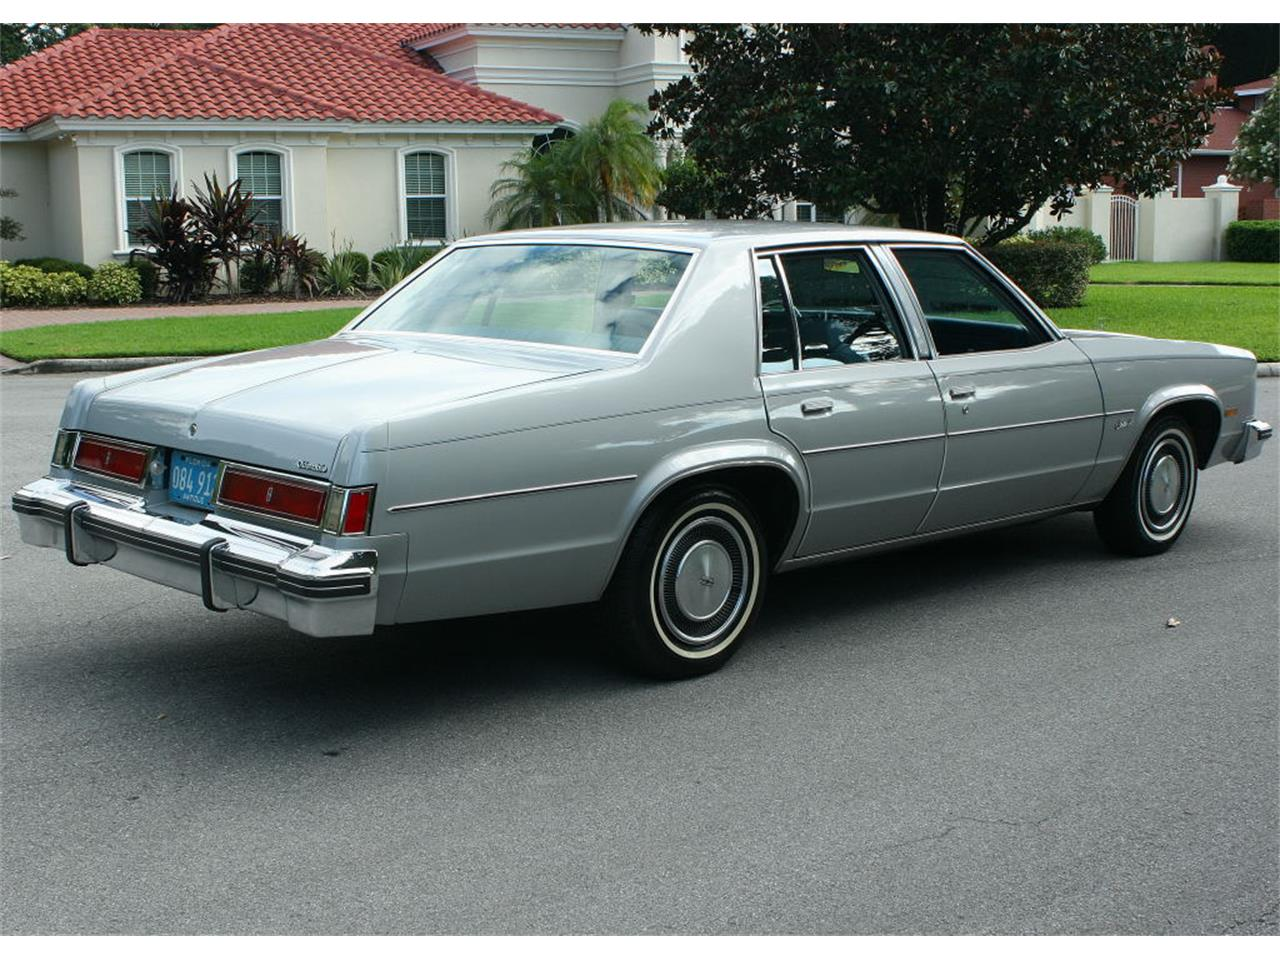 Large Picture of 1977 Oldsmobile Delta 88 - $12,500.00 Offered by MJC Classic Cars - LFEK